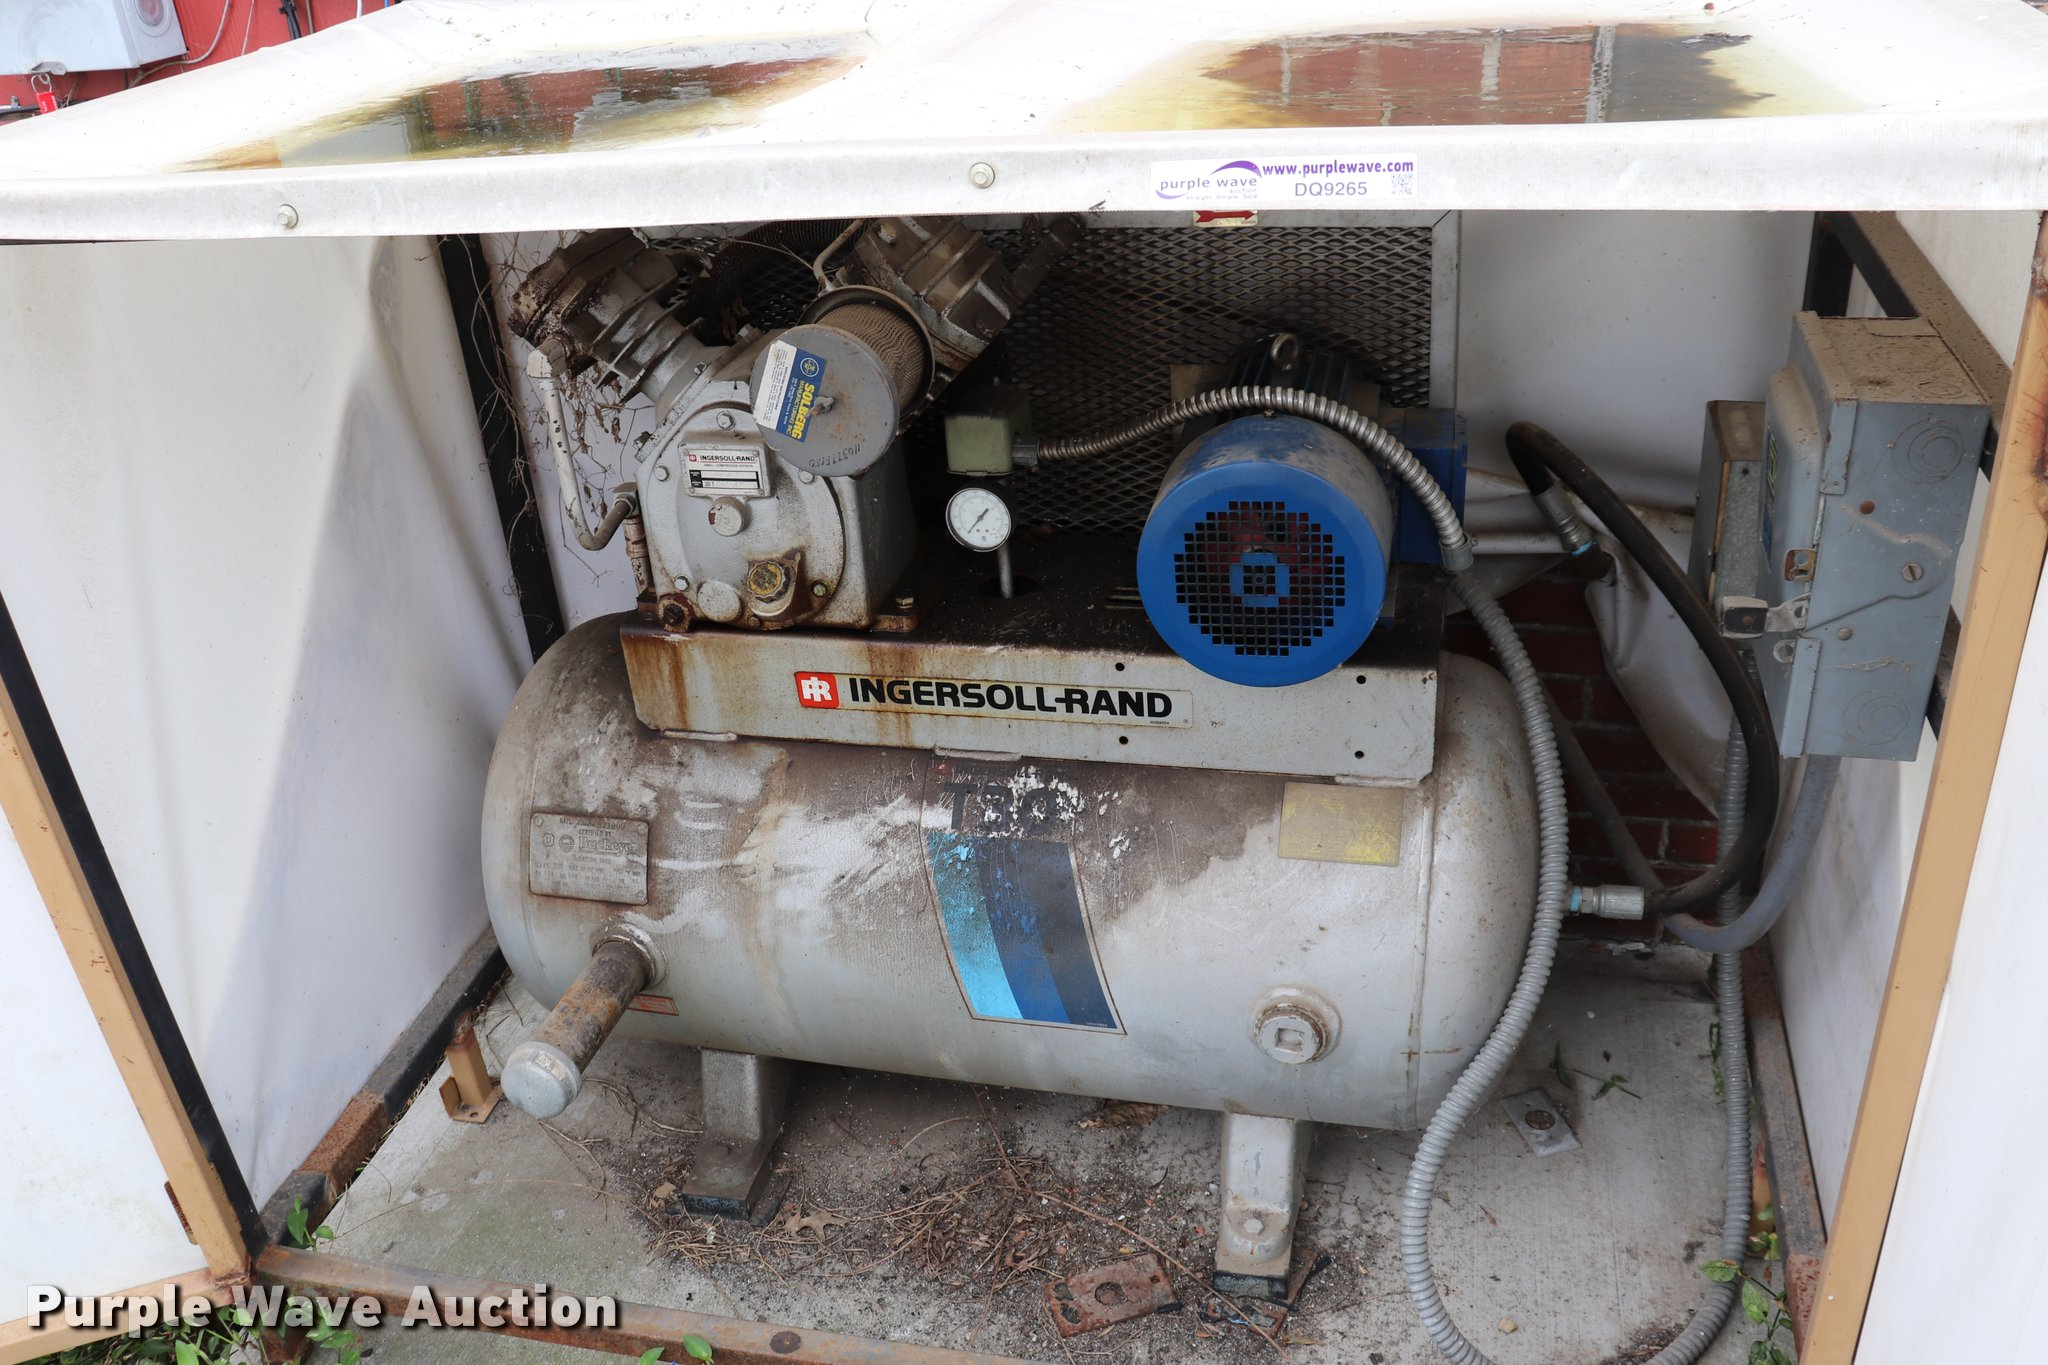 1998 Ingersoll Rand 242 5c Air Compressor Item Dq9265 So Sullair 185 Wiring Diagram Full Size In New Window